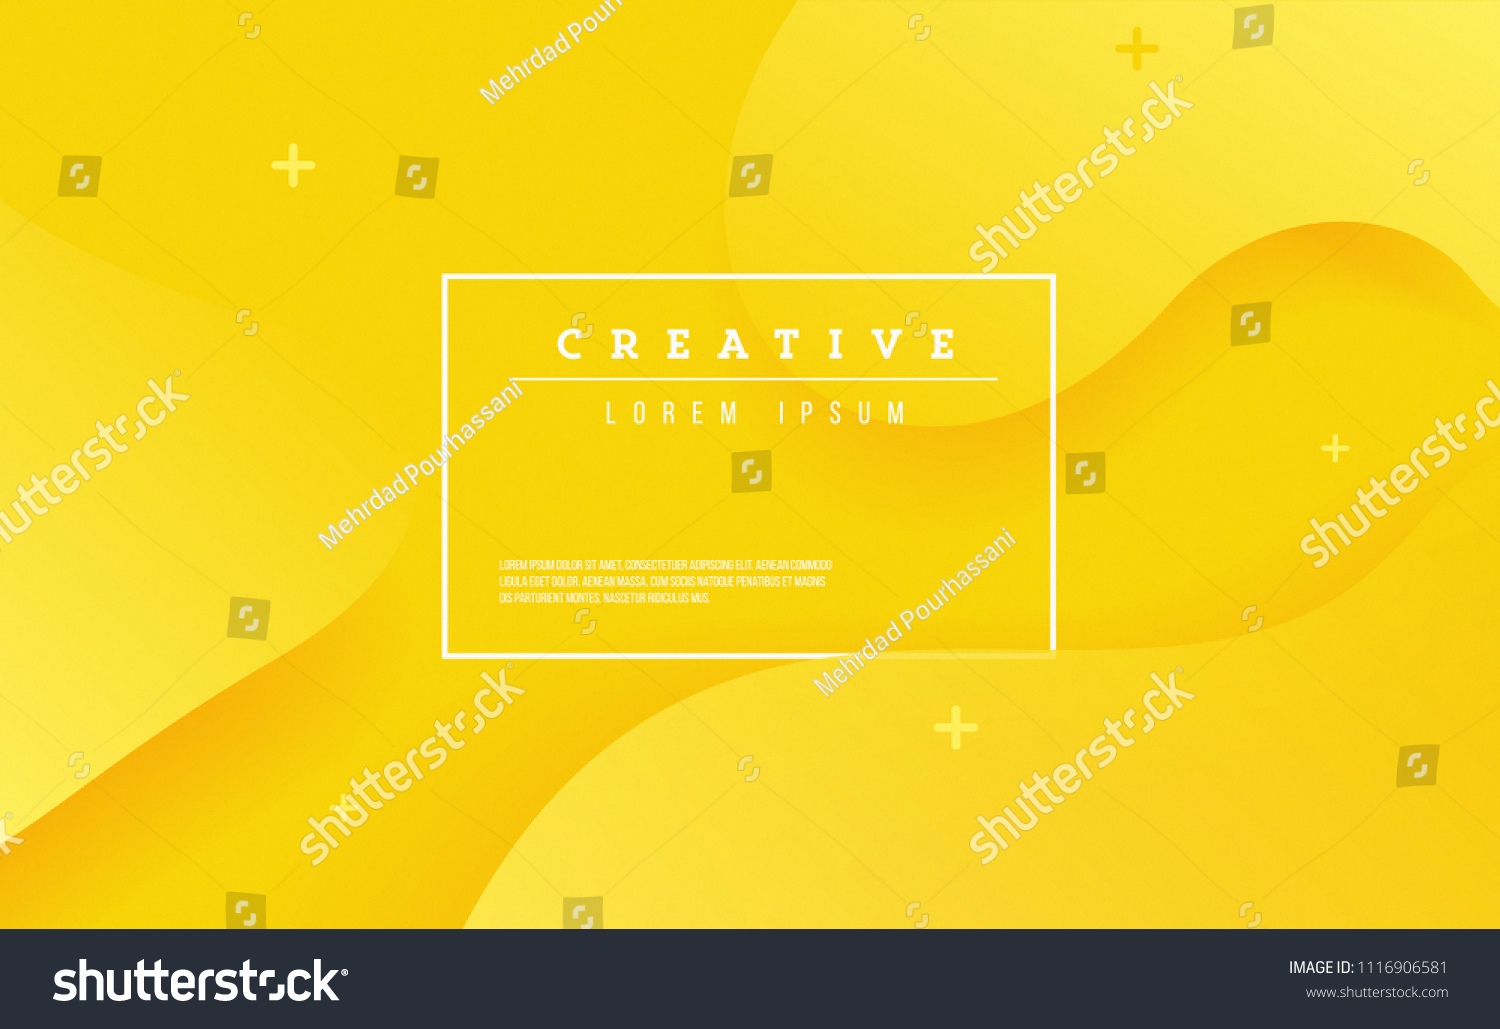 Dynamic 3D background with fluid shapes modern concept. minimal poster. ideal for banner, web, header, cover, billboard, brochure, social media, landing page.